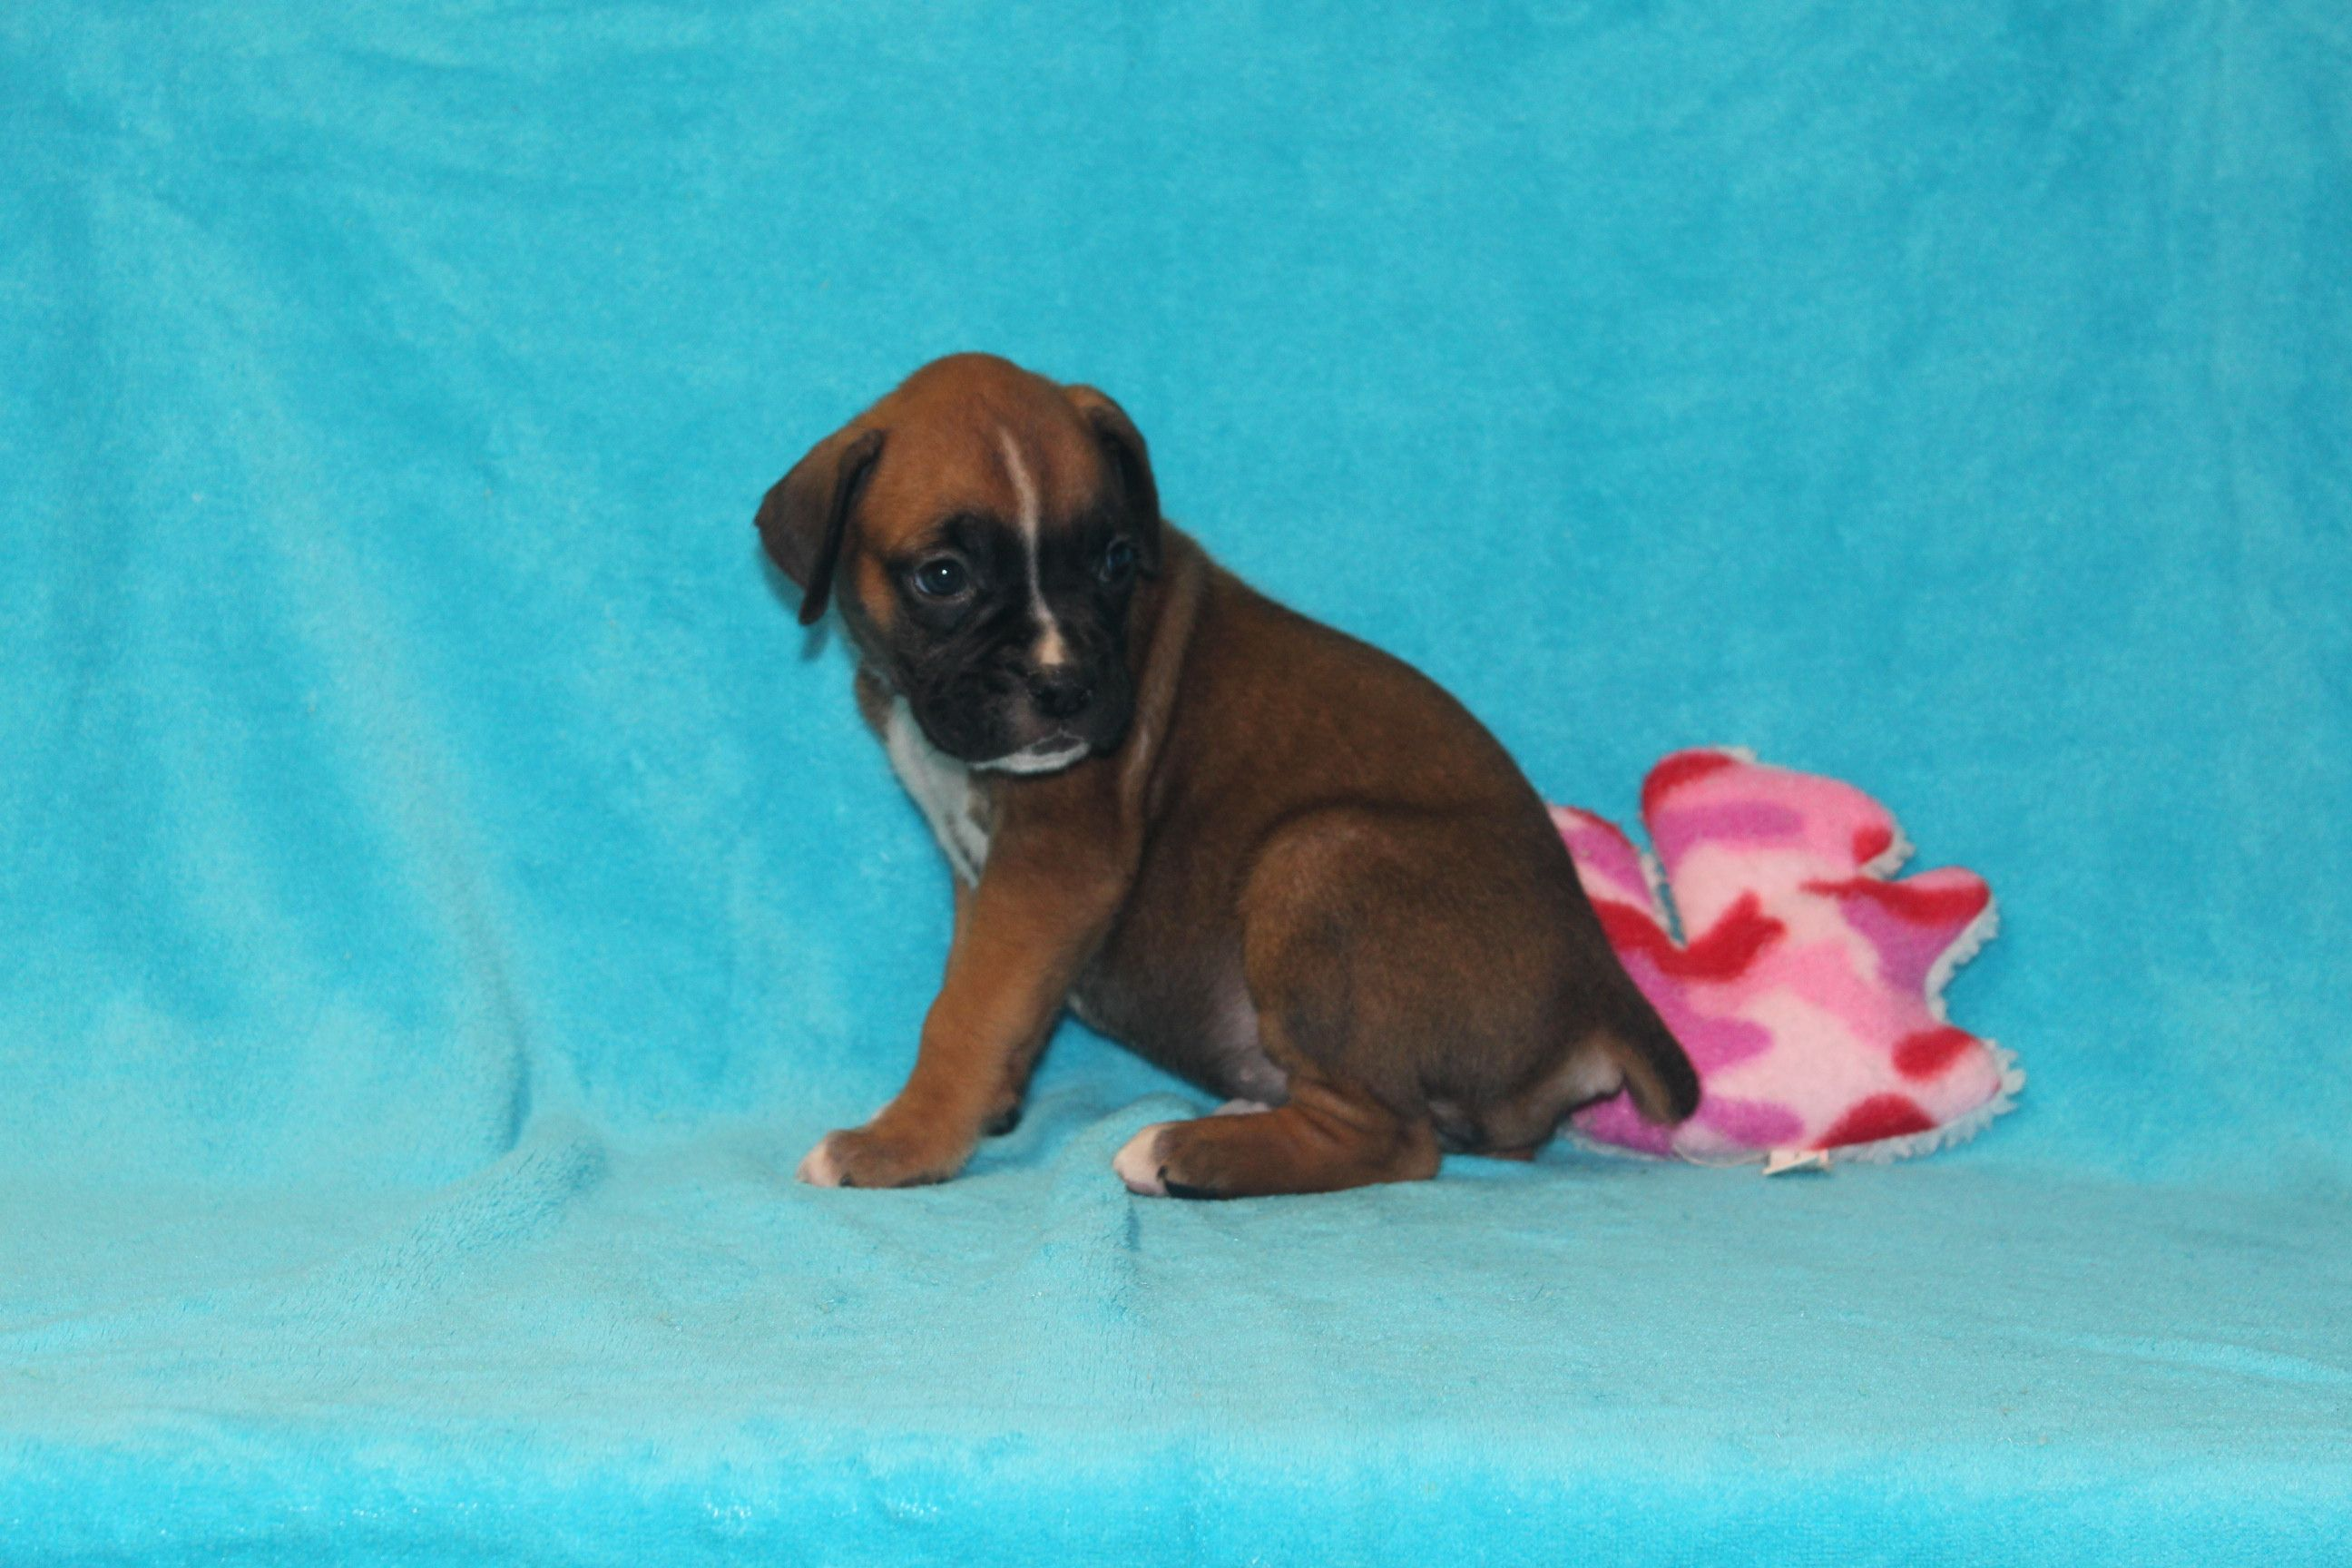 Crystal Akc Doggie Boxers For Sale In Corning Ohio Puppies